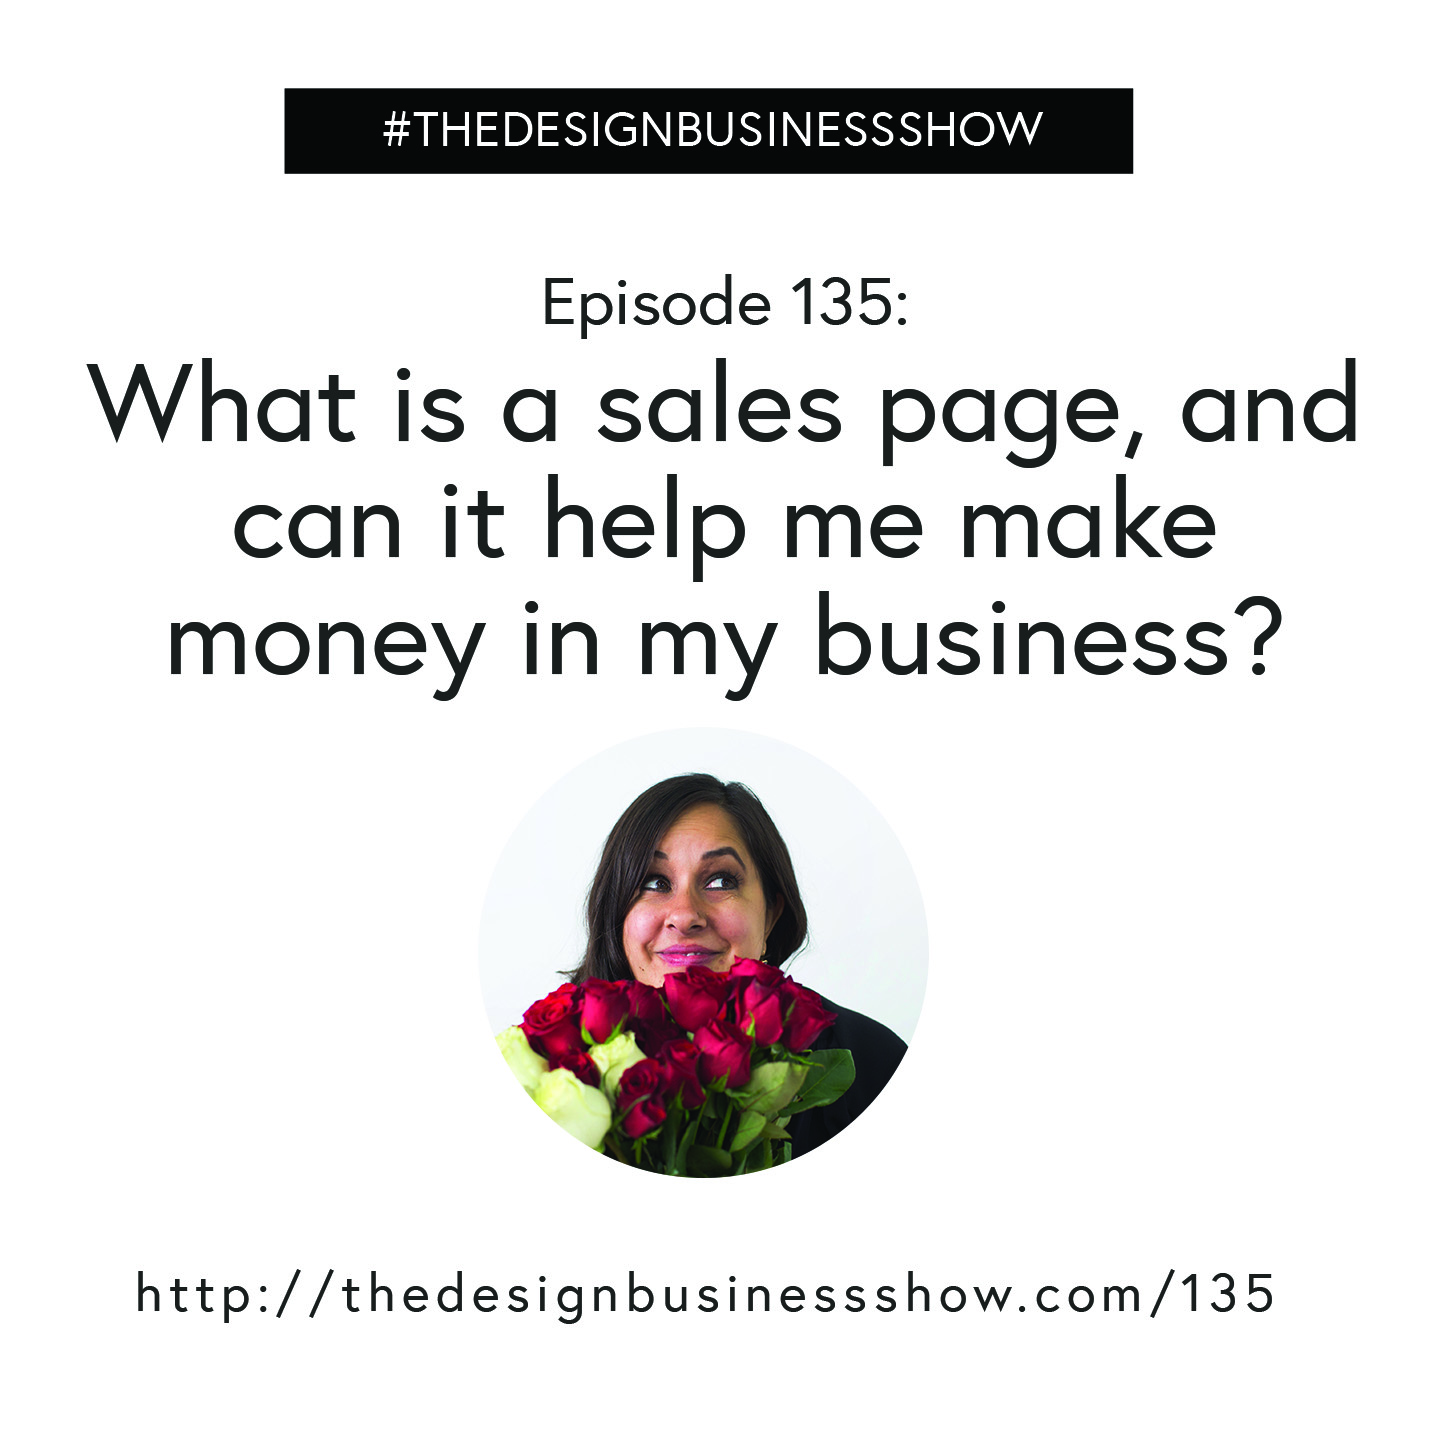 Check out episode 135 of The Design Business Show to learn how you can make money with a sales page!